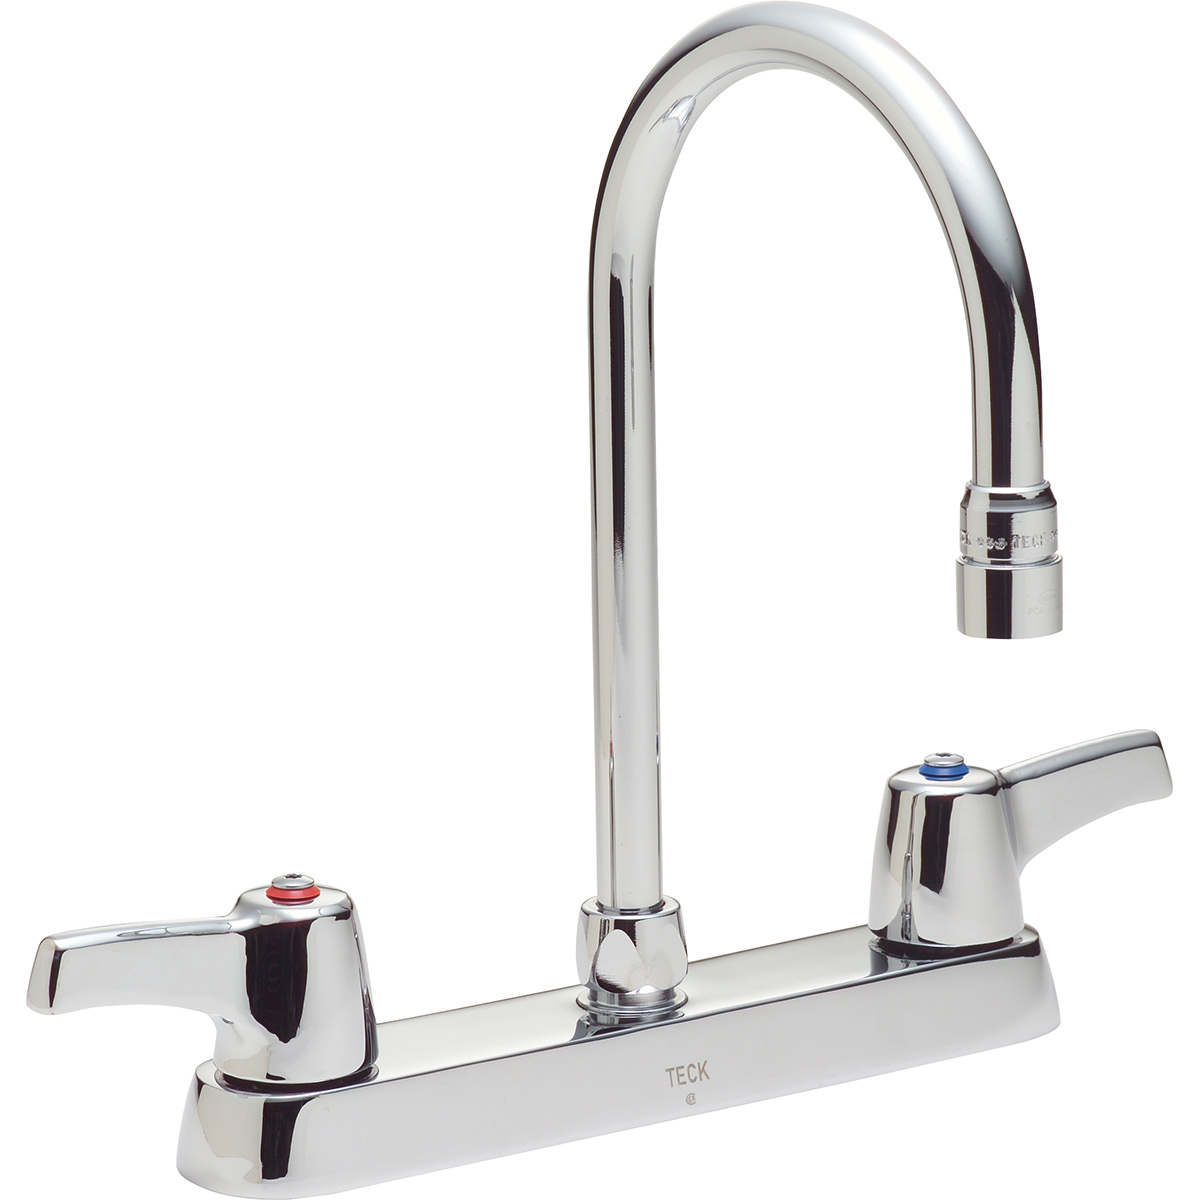 Bath4All - Delta 26c3953 High Arc Kitchen Faucet with .5 GPM ...